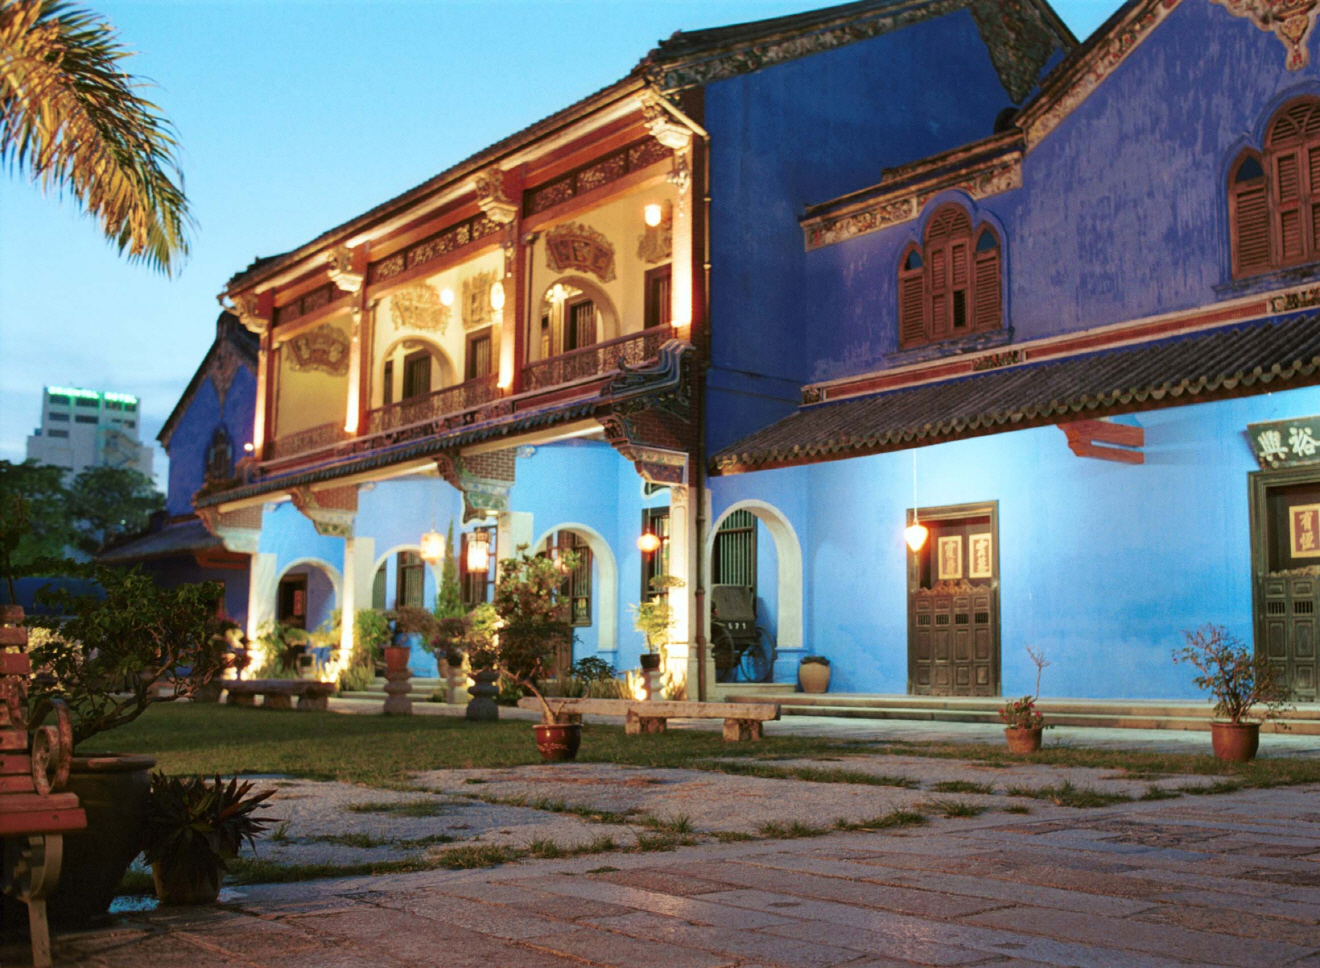 Cheong Fatt Tze Mansion - Award of Excellence 2000